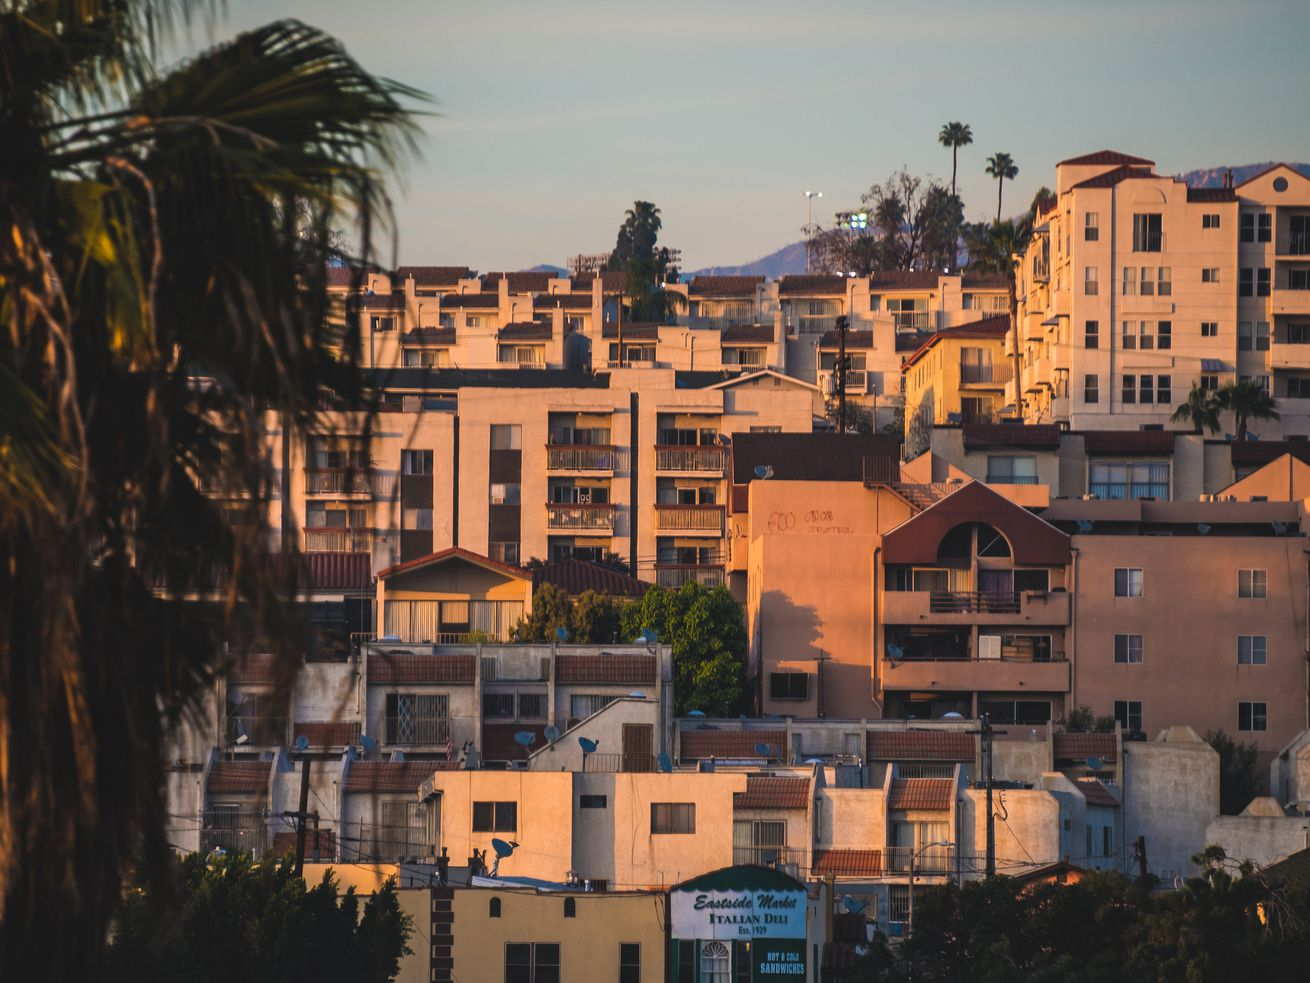 A cluster of dense white and beige apartments on a hillside at sunset.